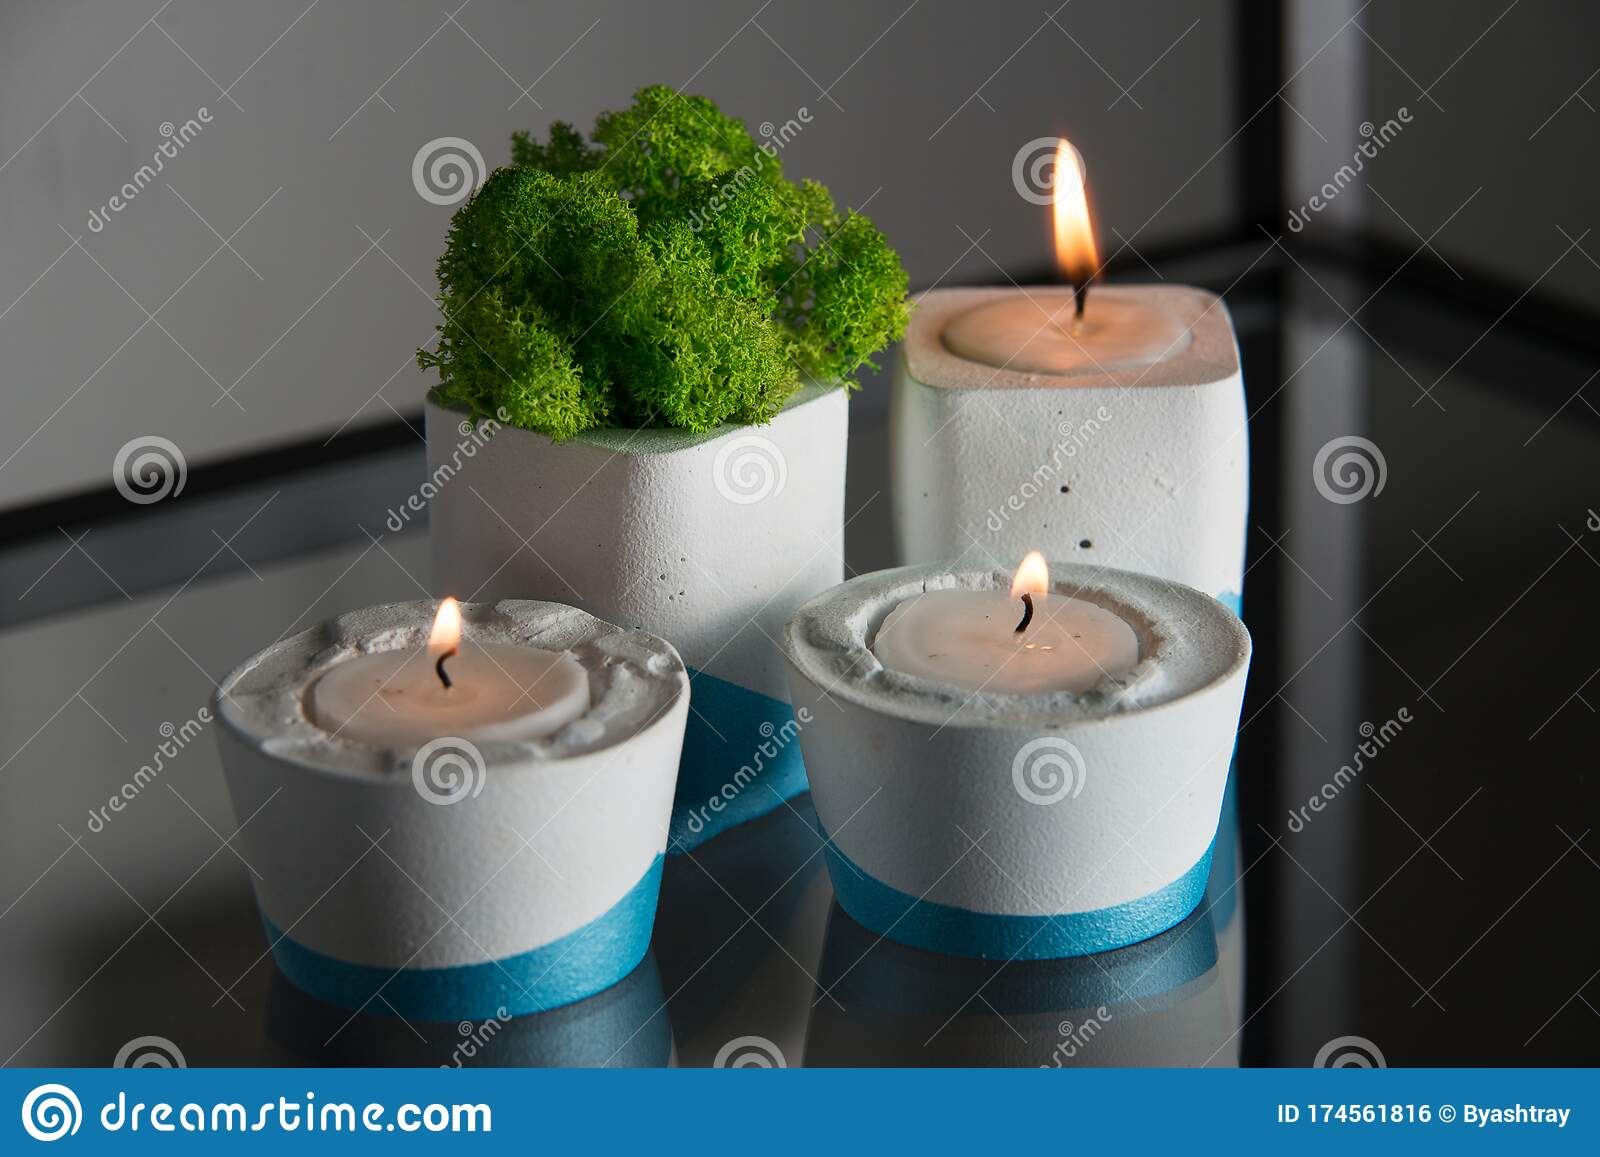 Candles And Moss In White And Blue Concrete Candle Holders Stock Photo Image Of Design Tealight 174561816